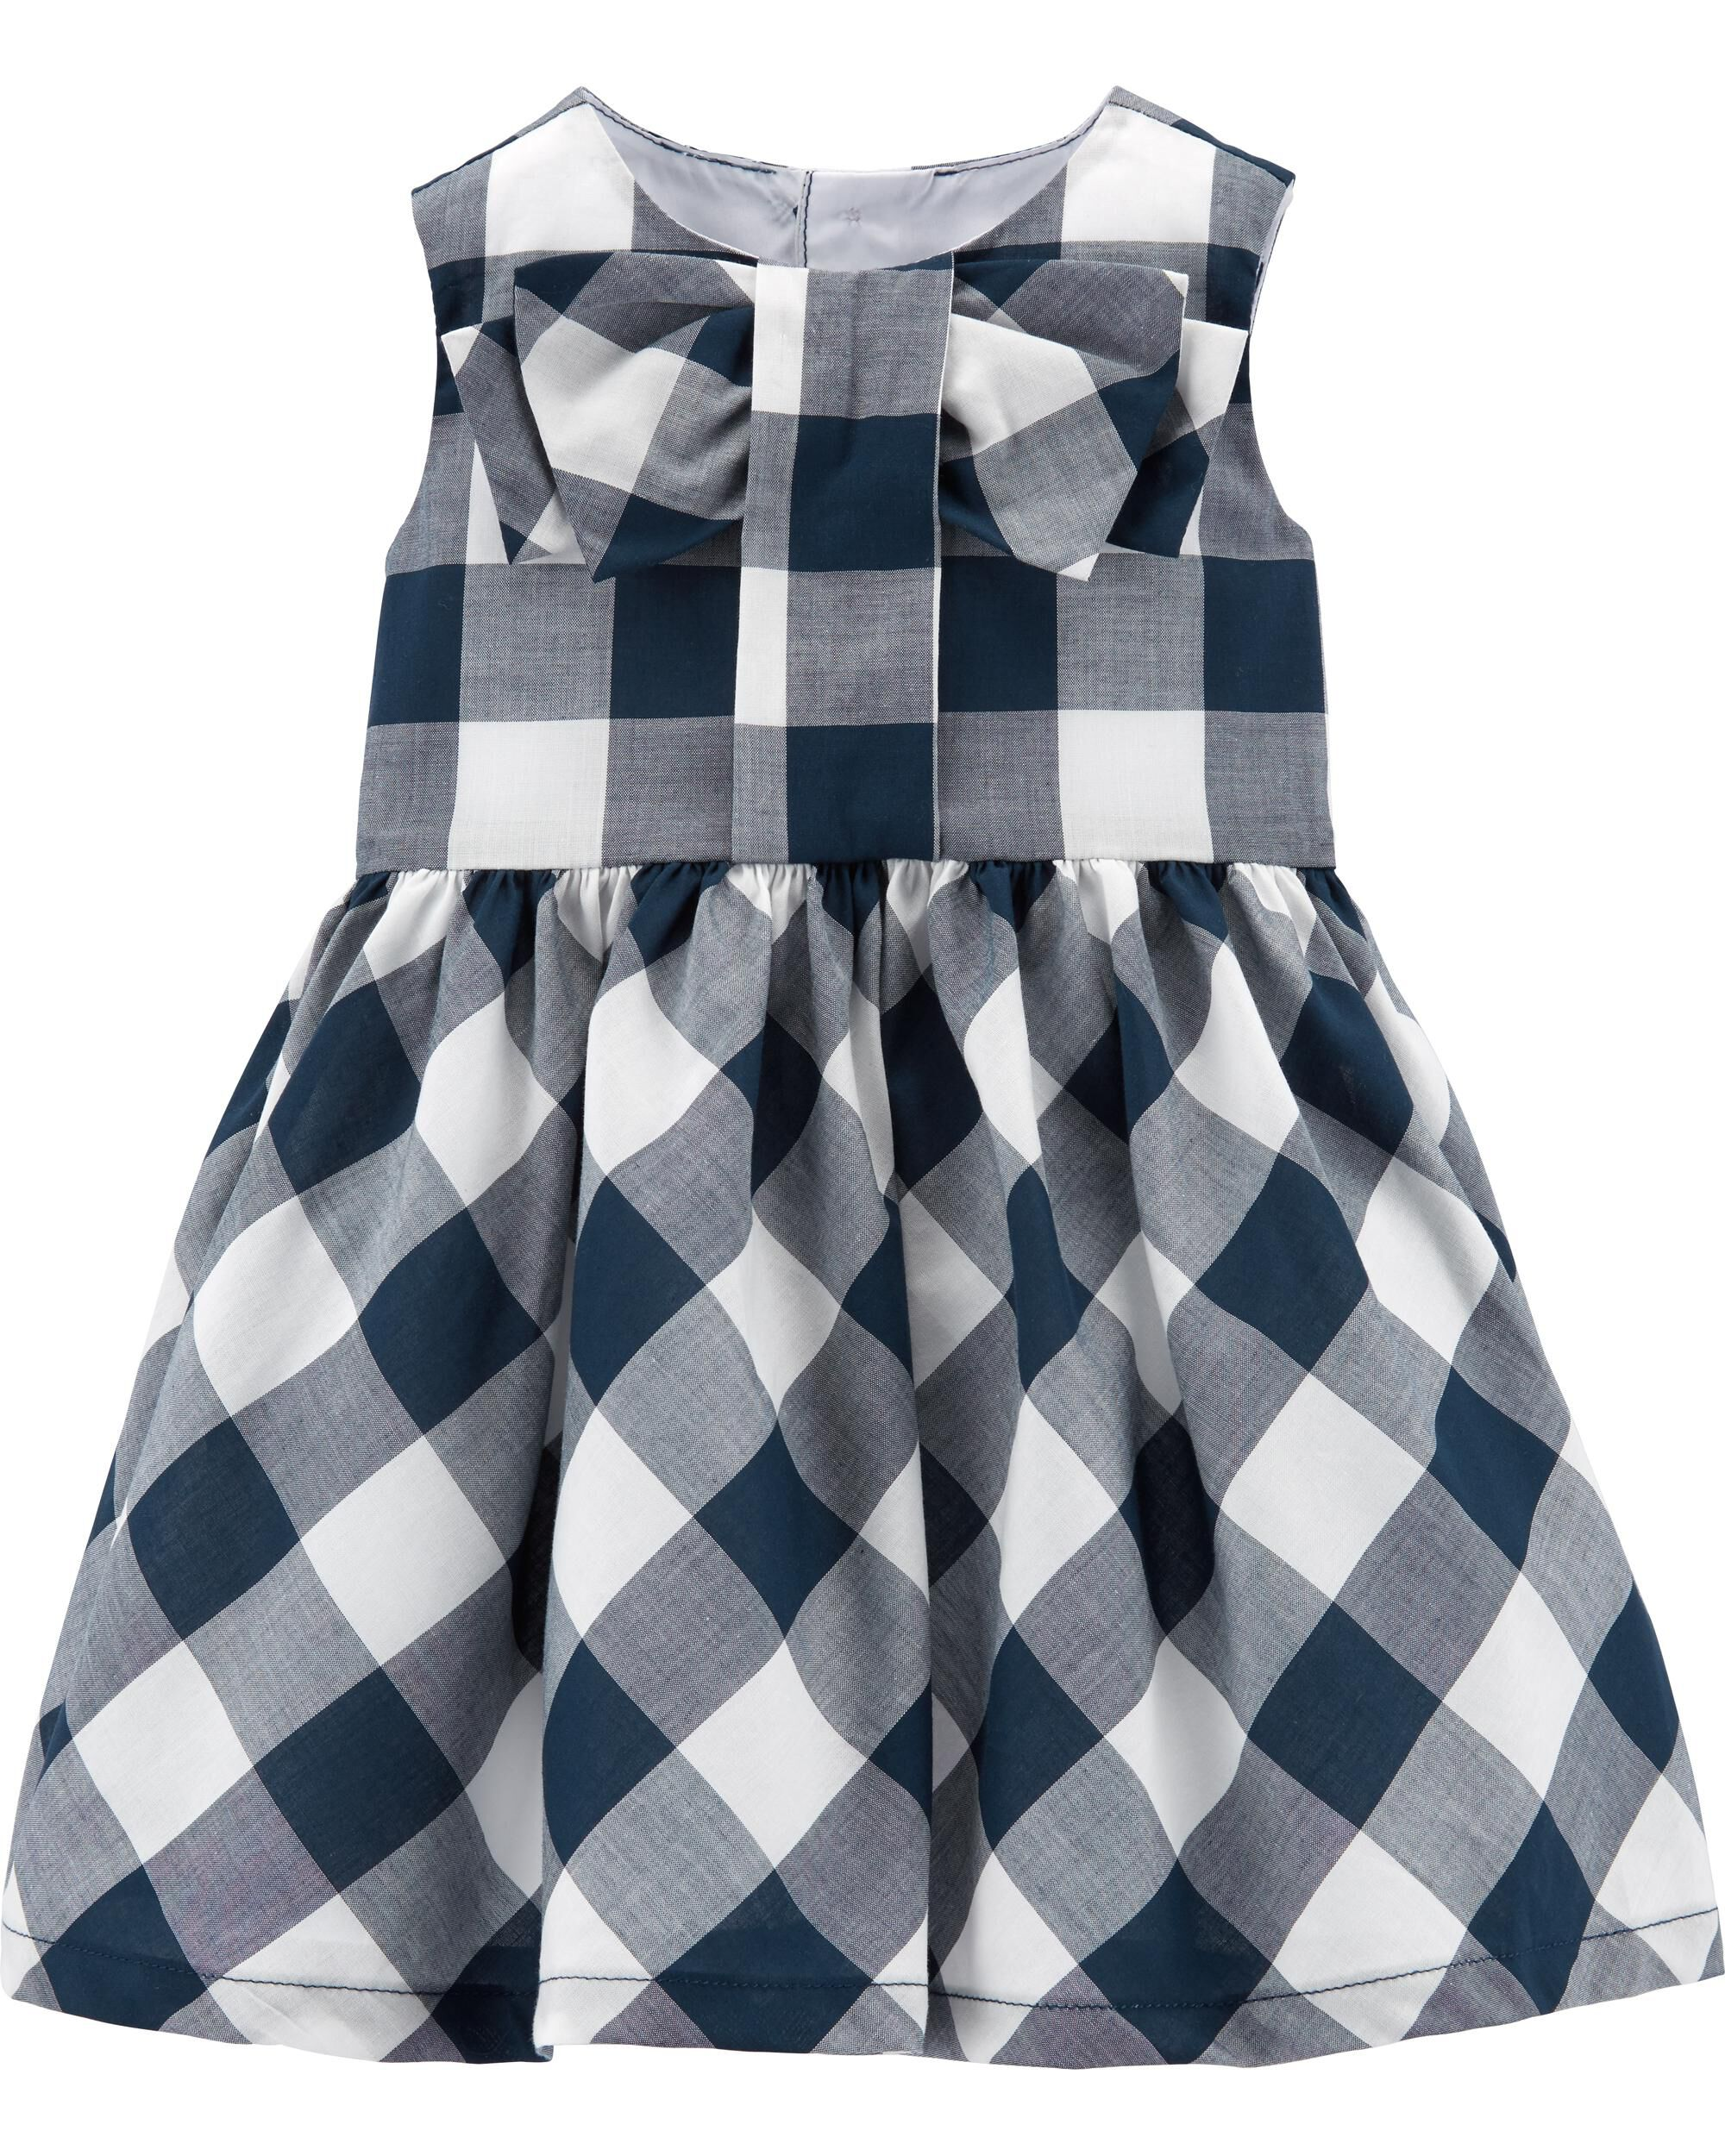 9657e1f8fe47 Kleding en accessoires Carters Baby Girl Plaid Holiday Dress Set Size 6 12  18 24 Months NWT Christmas Baby